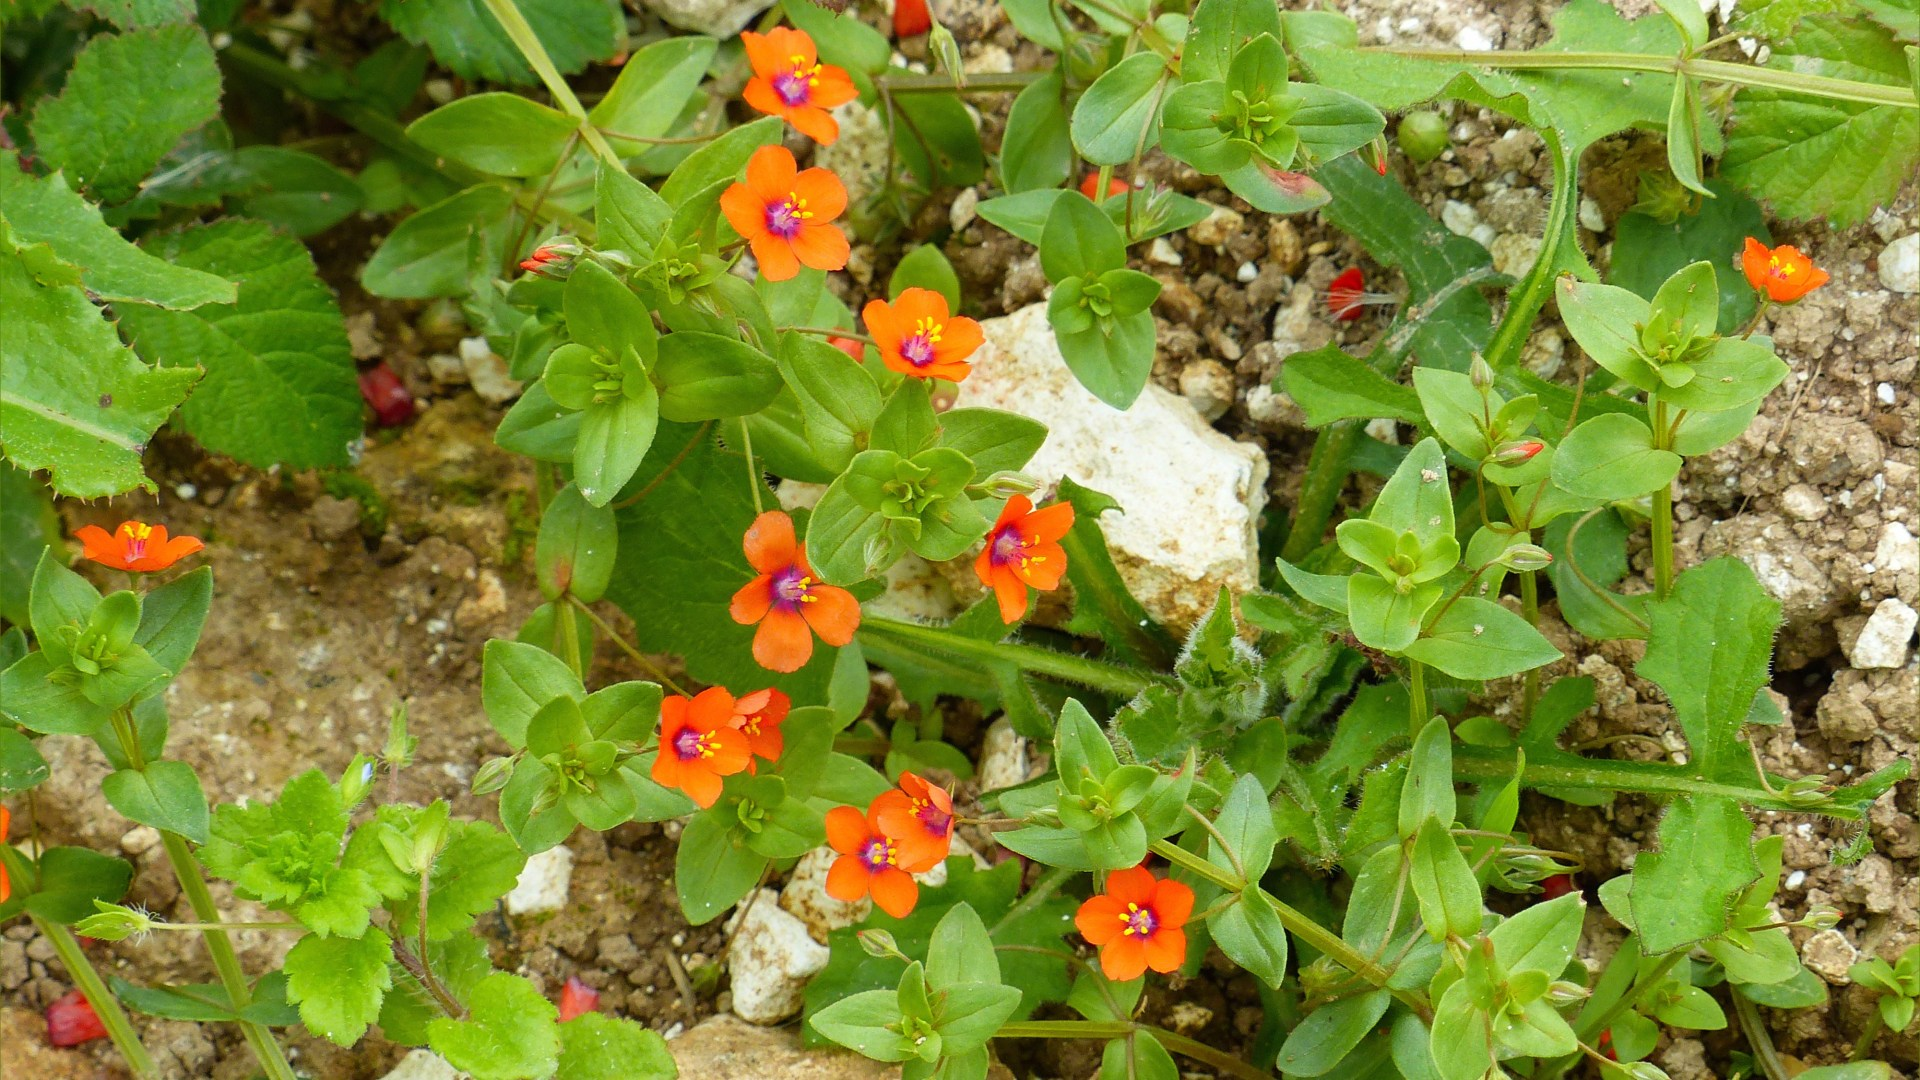 Small orange flowers of Scarlet Pimpernel growing on uncultivated stony ground margin of a maize field